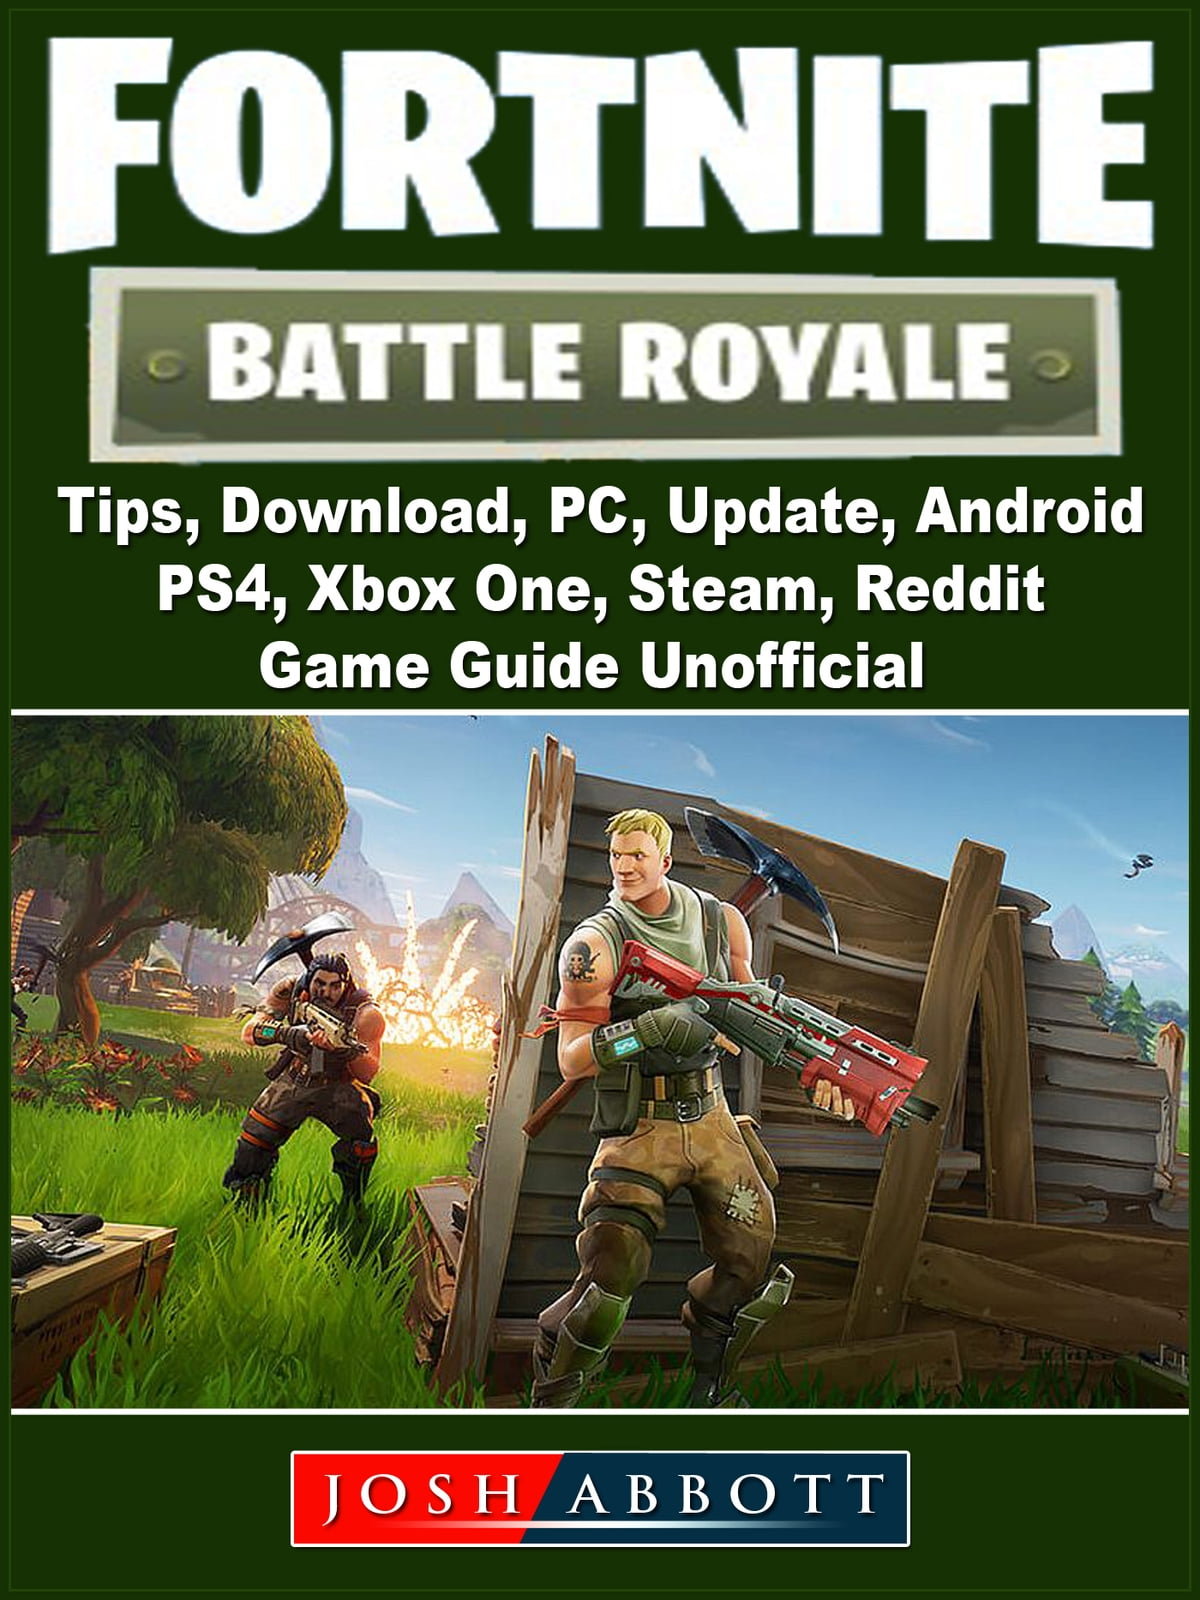 Fortnite Battle Royale Tips Download Pc Update Android Ps4 Xbox One Steam Reddit Game Guide Unofficial Ebook By The Yuw 9781387760558 Rakuten Kobo United States